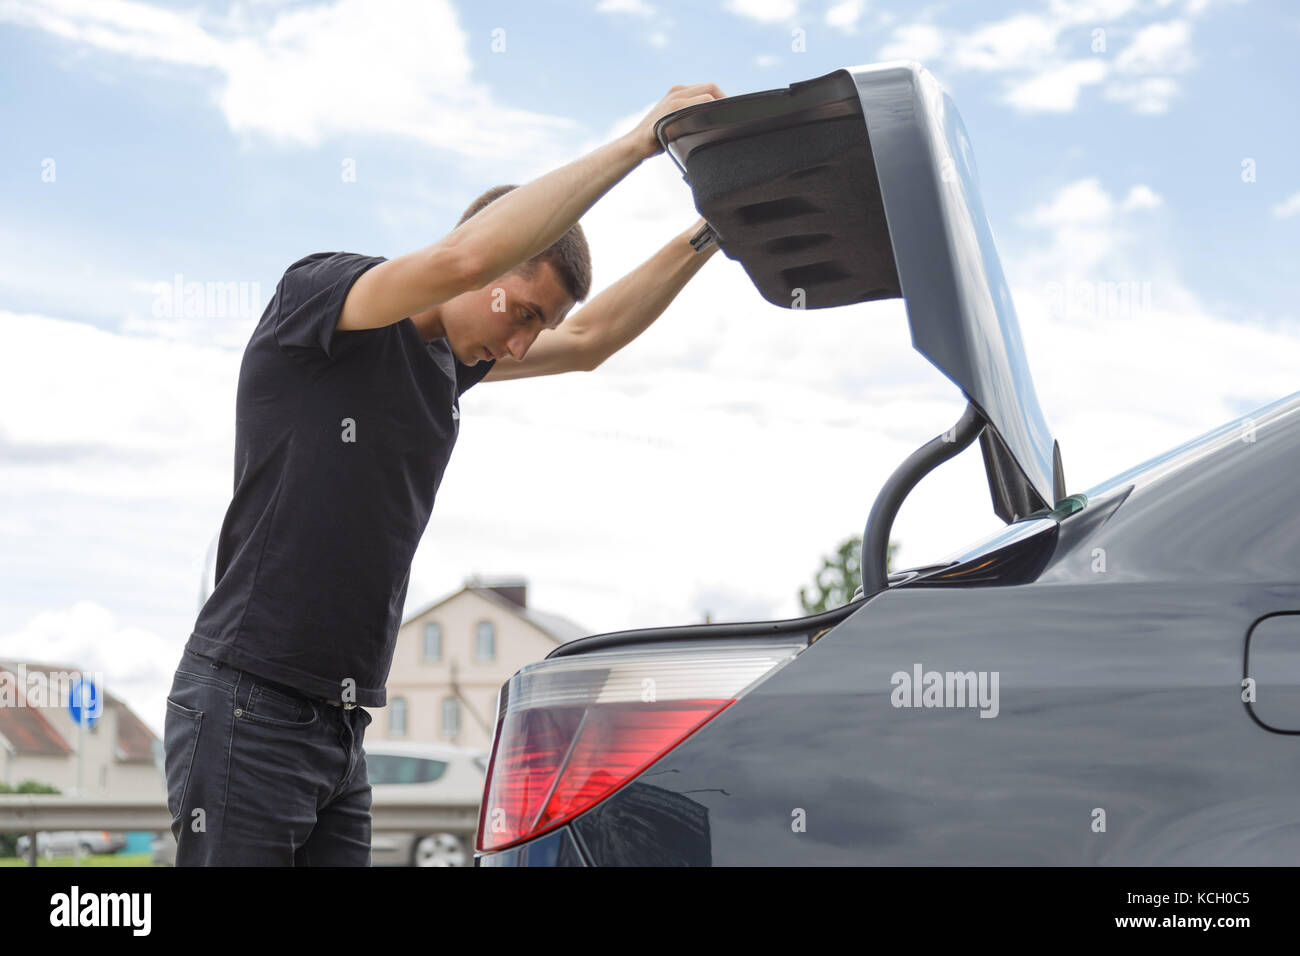 Car broke down on the way. The man opened the trunk to take the tools. - Stock Image